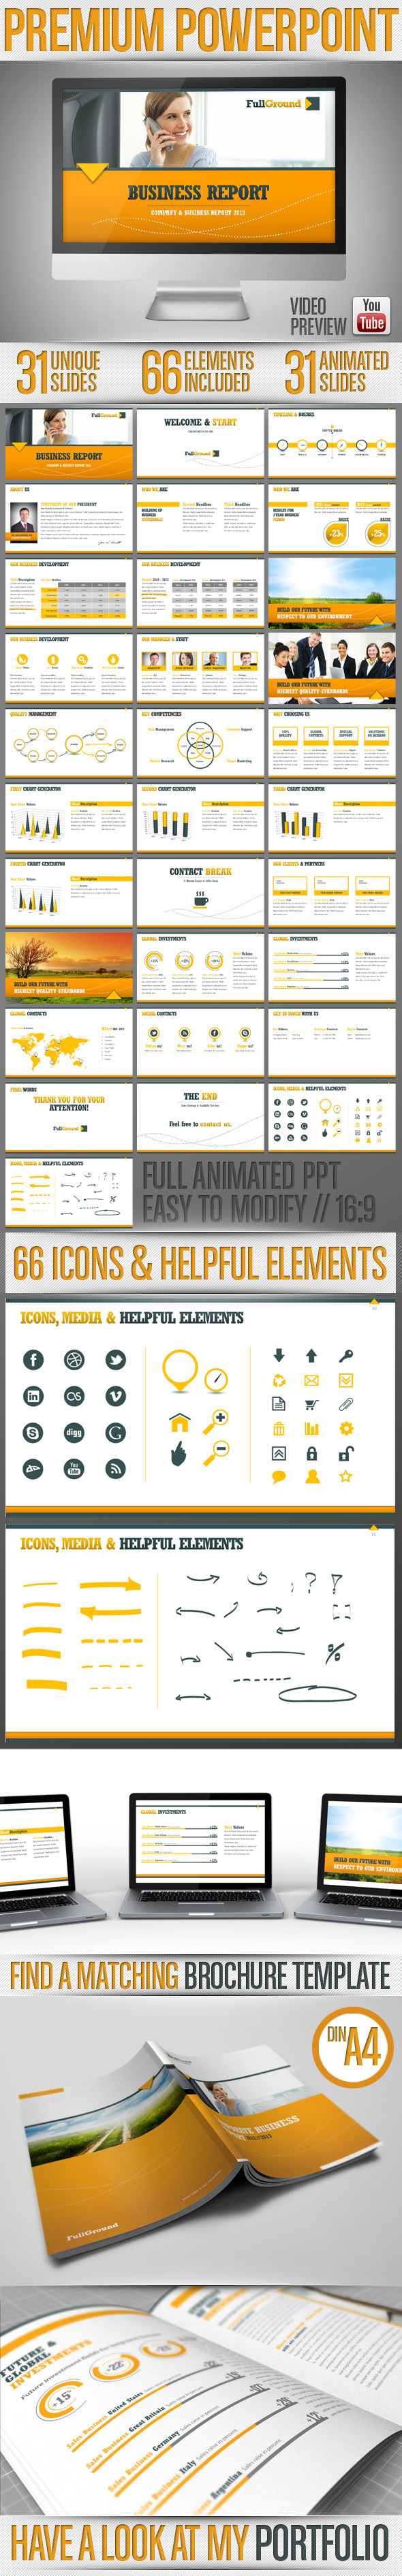 Fullground PowerPoint Presentation Template